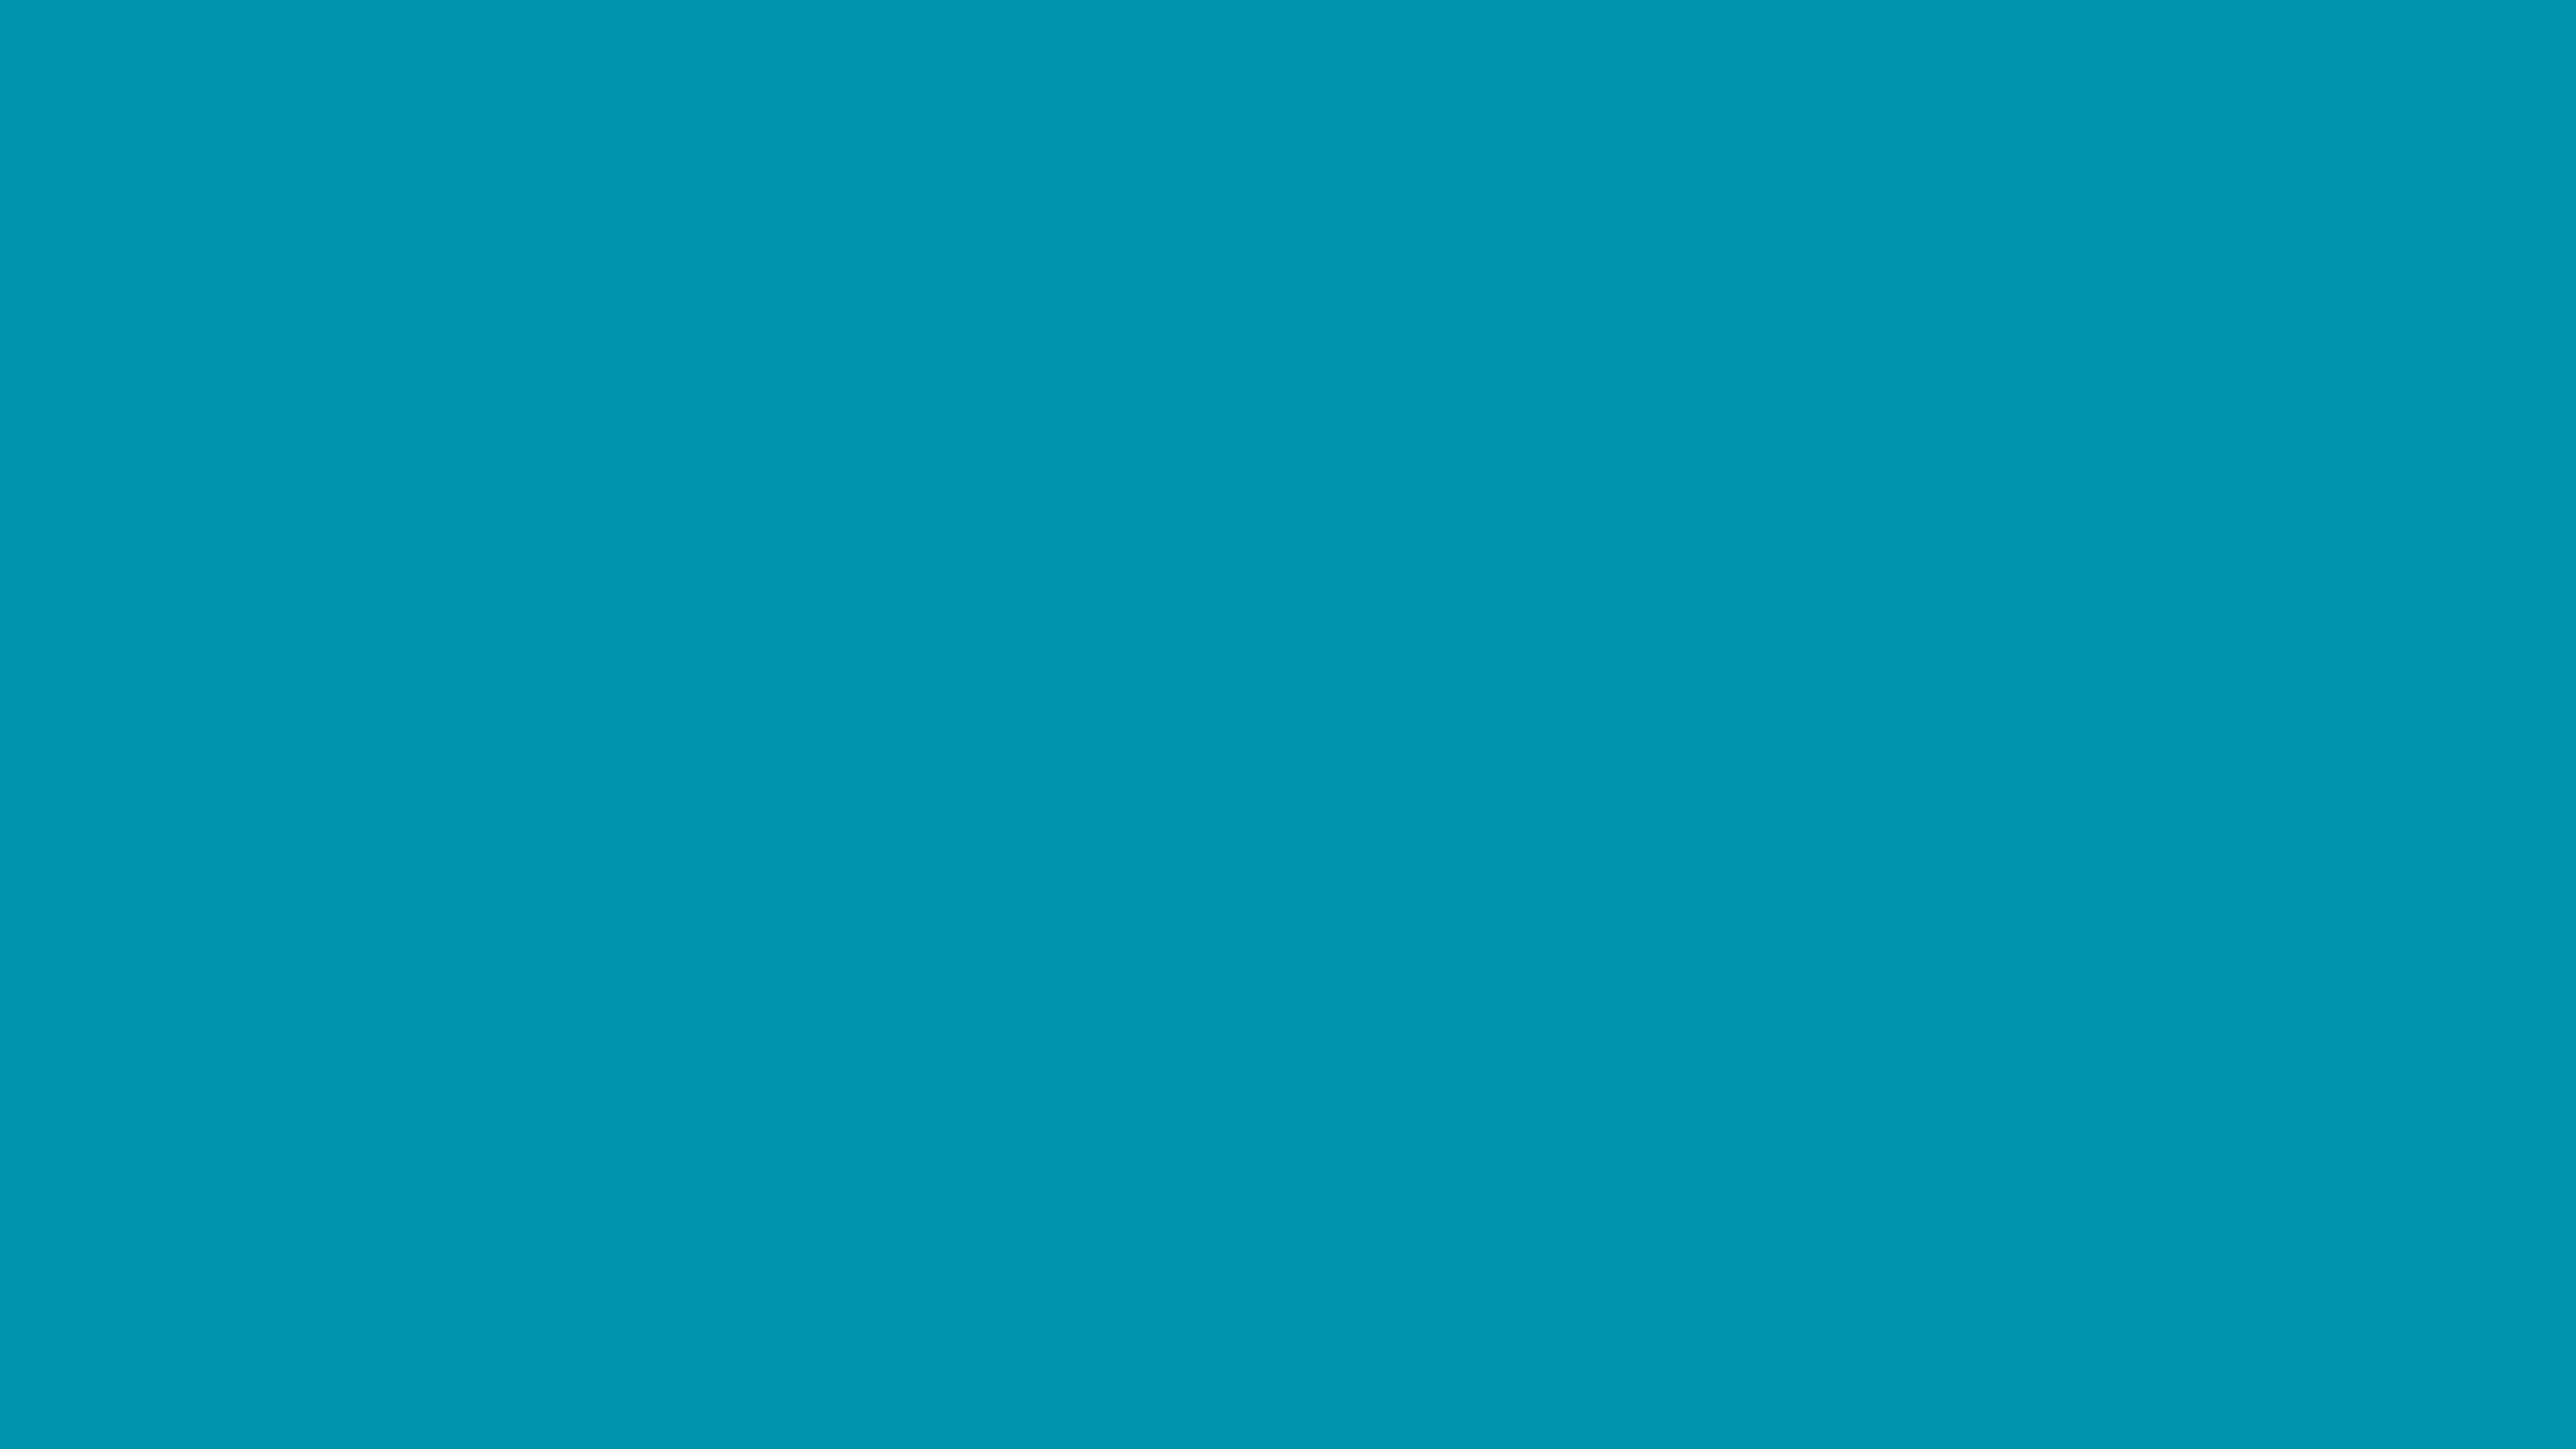 7680x4320 Blue Munsell Solid Color Background